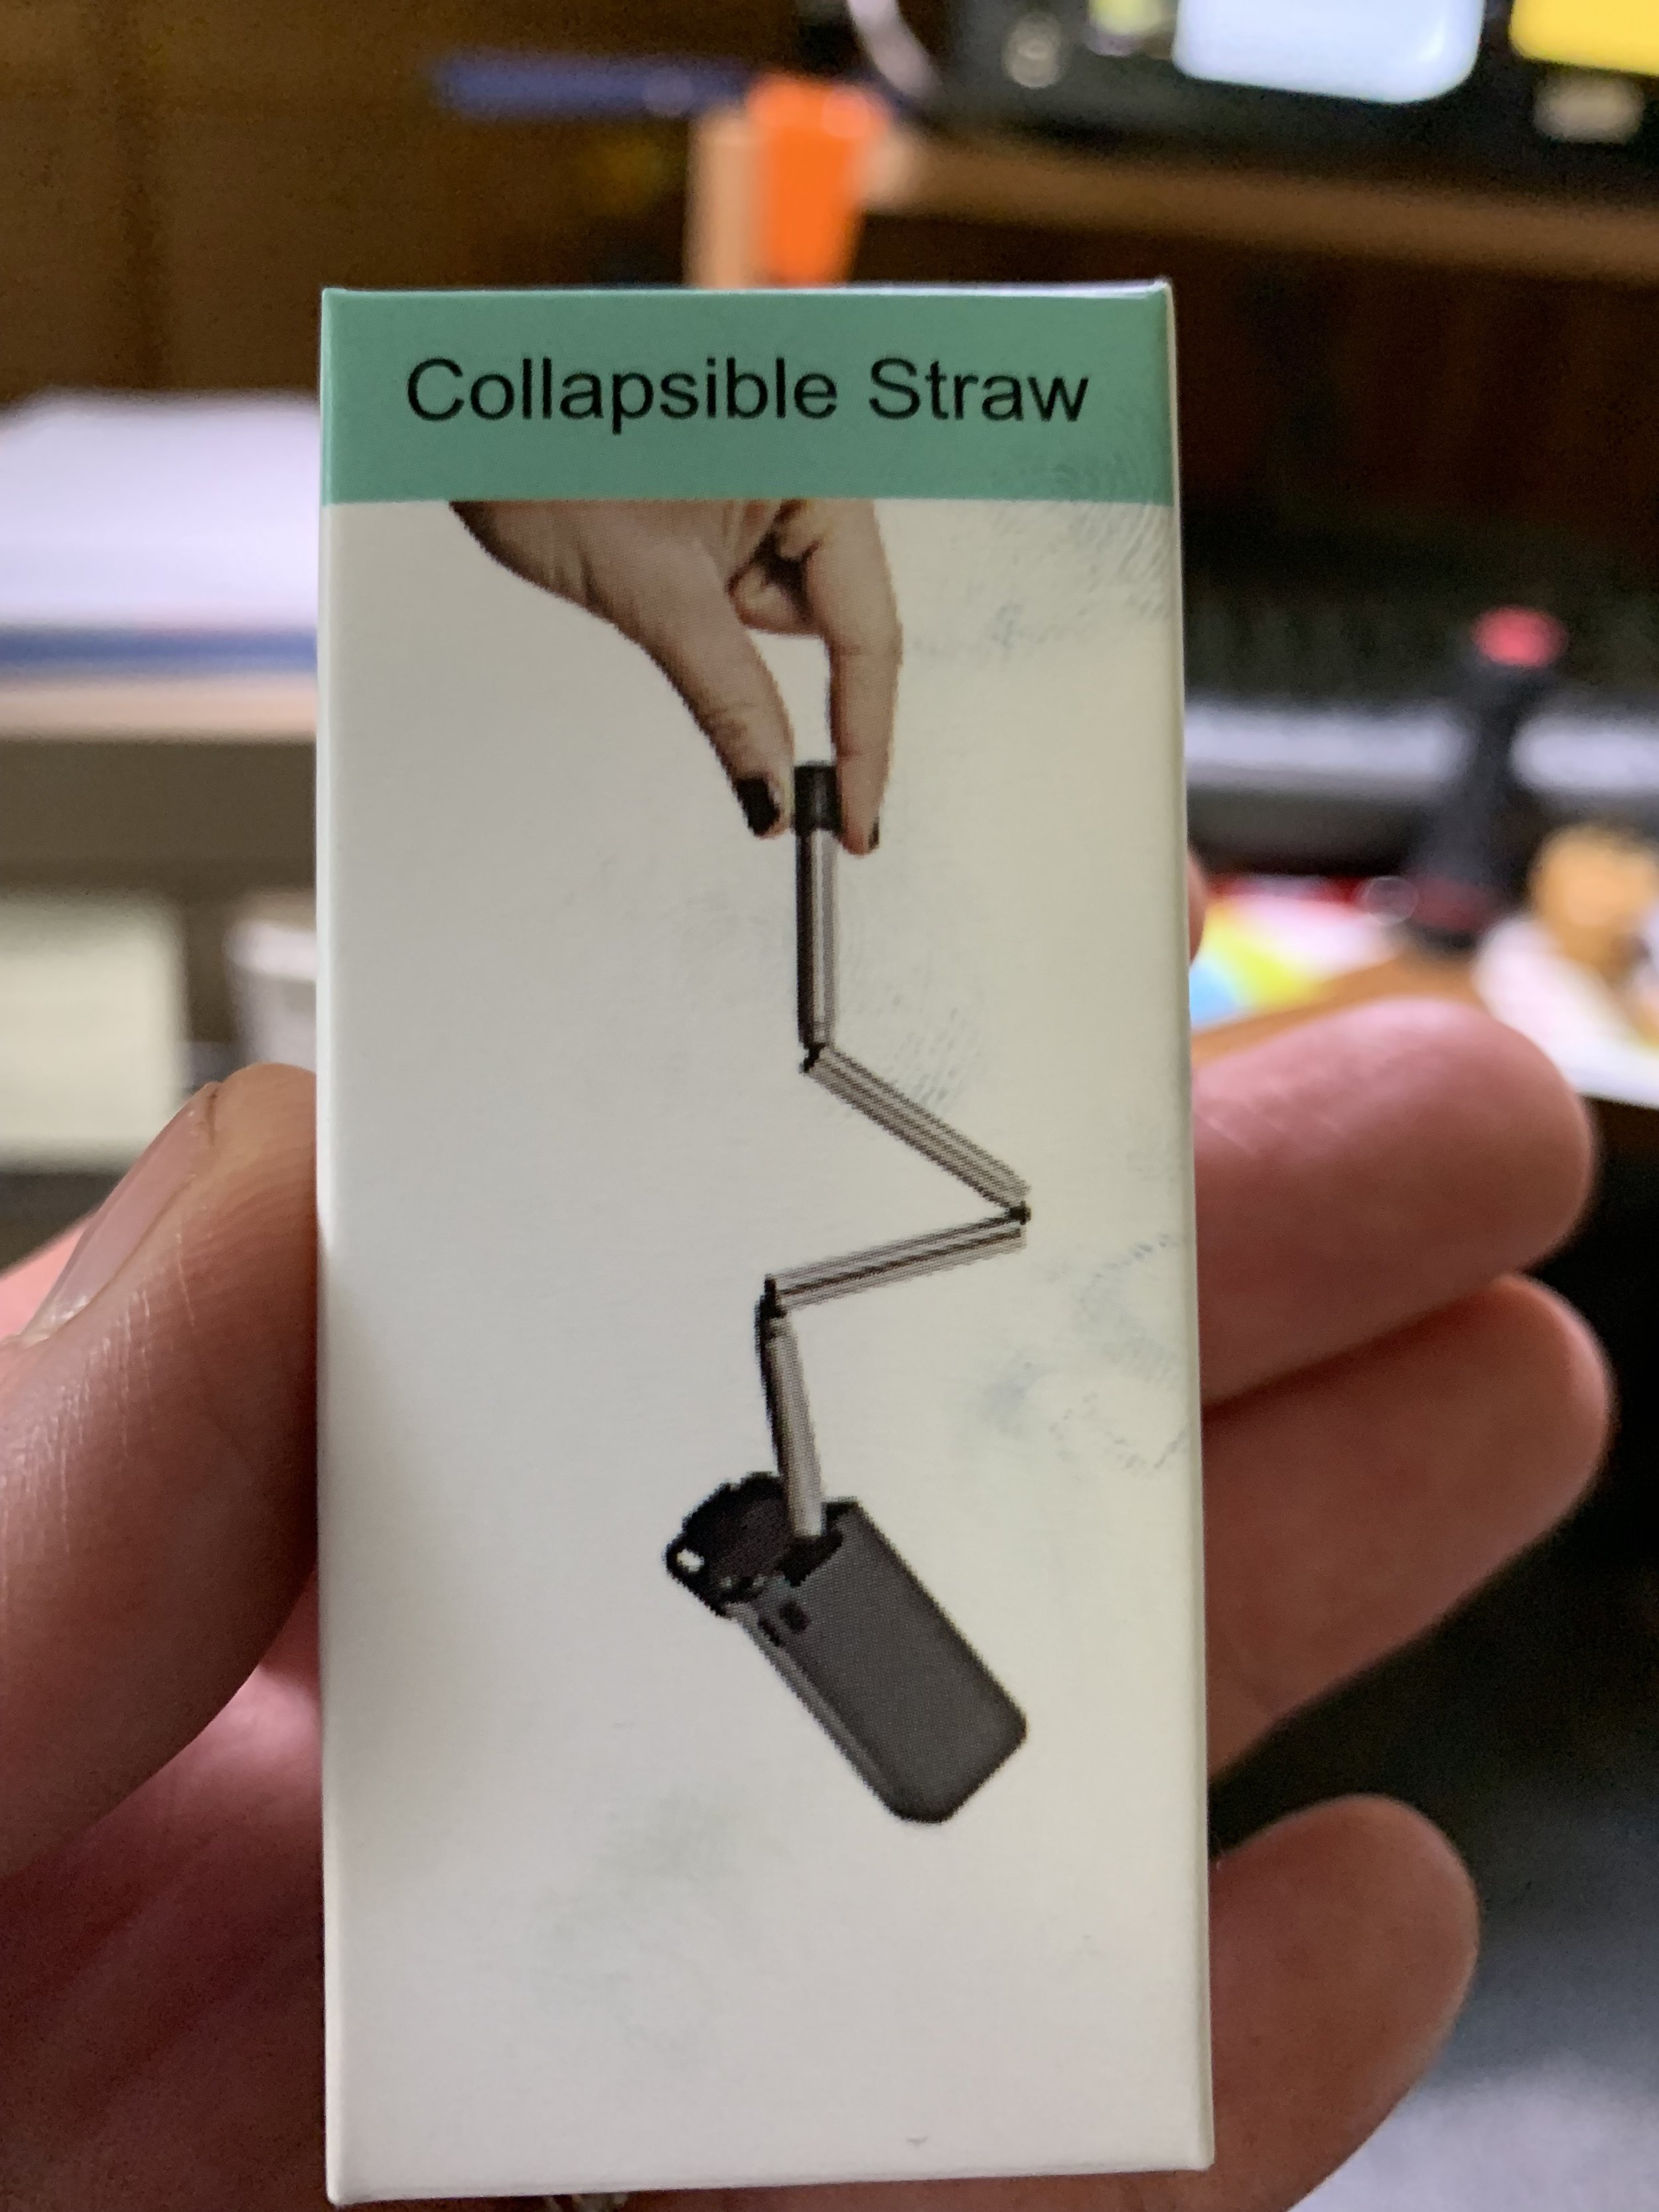 Here's the box my straw came in.